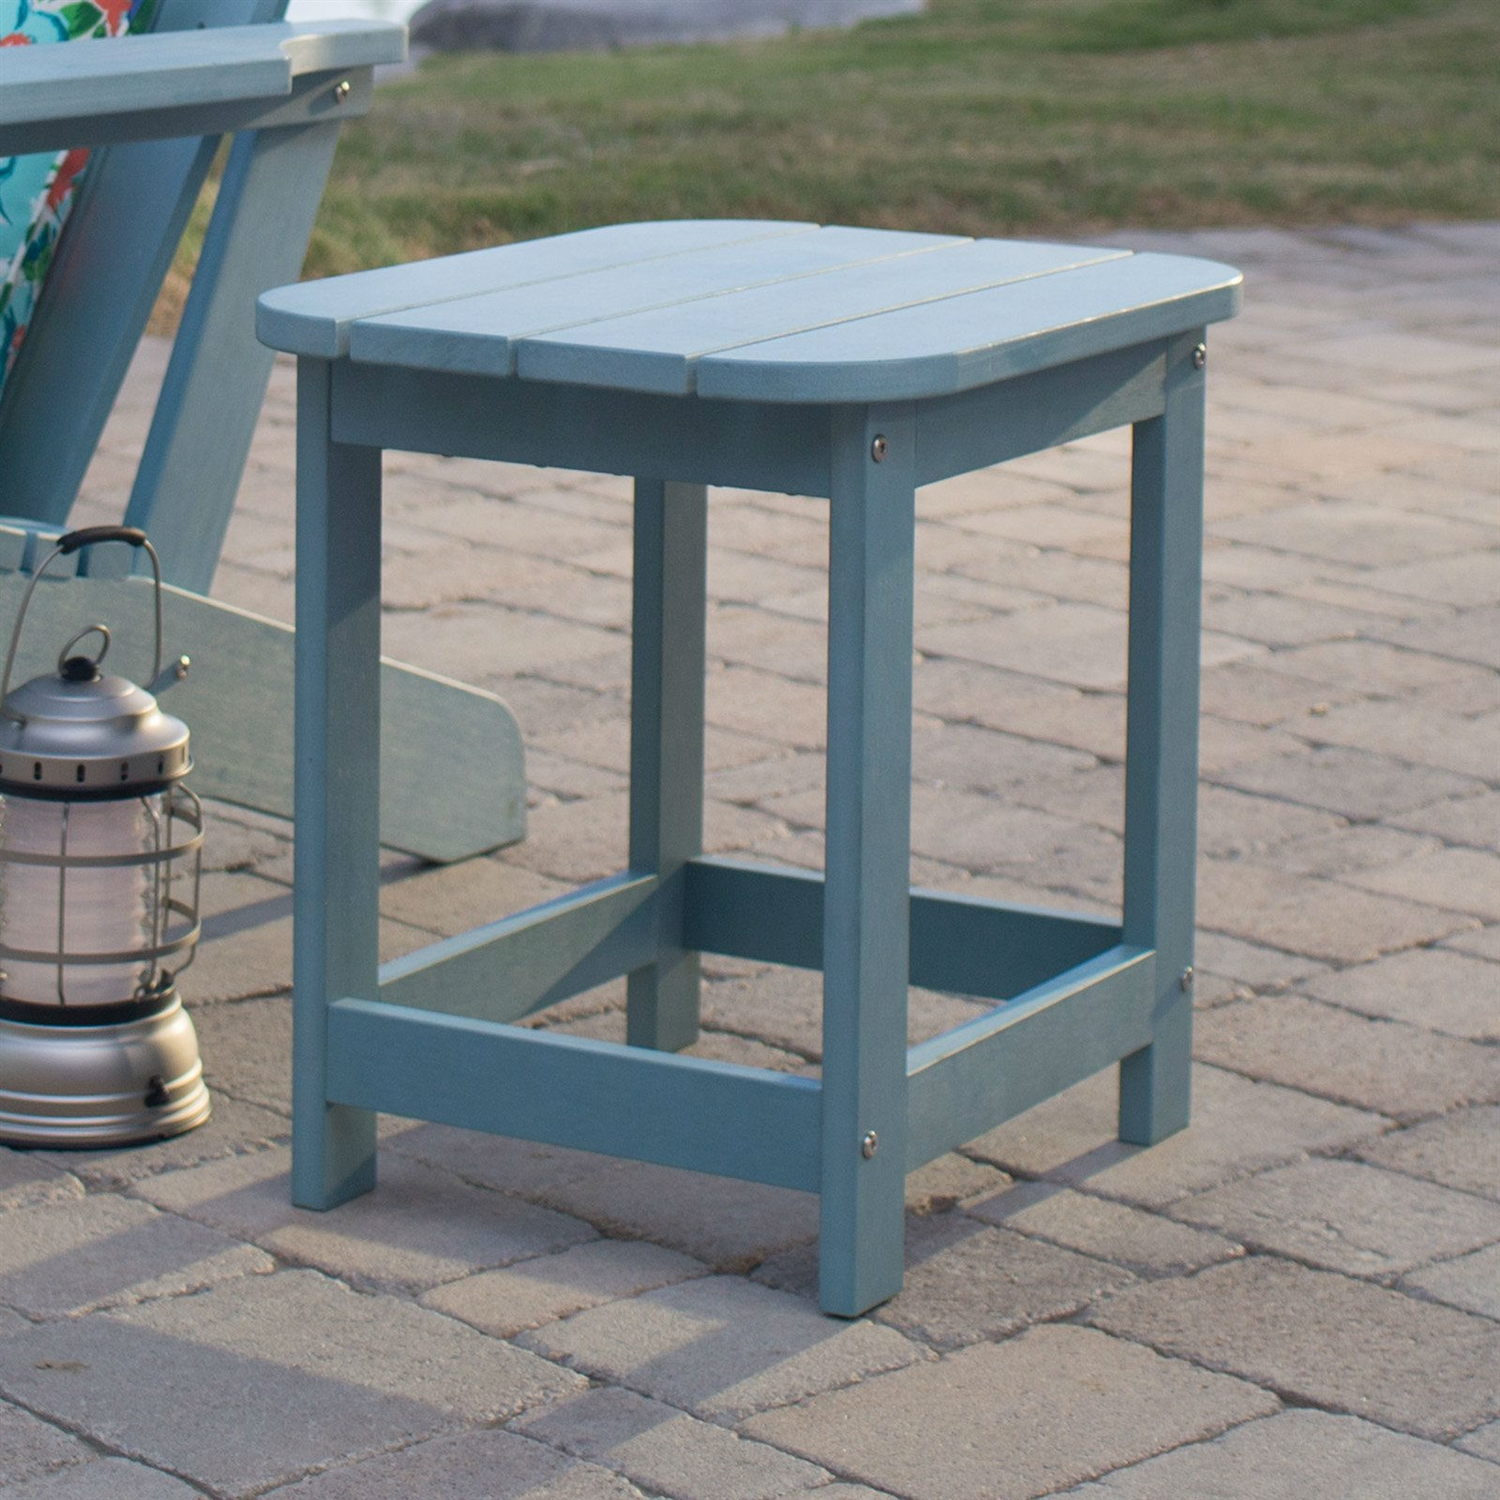 Outdoor Deck Patio Side Table In Blue